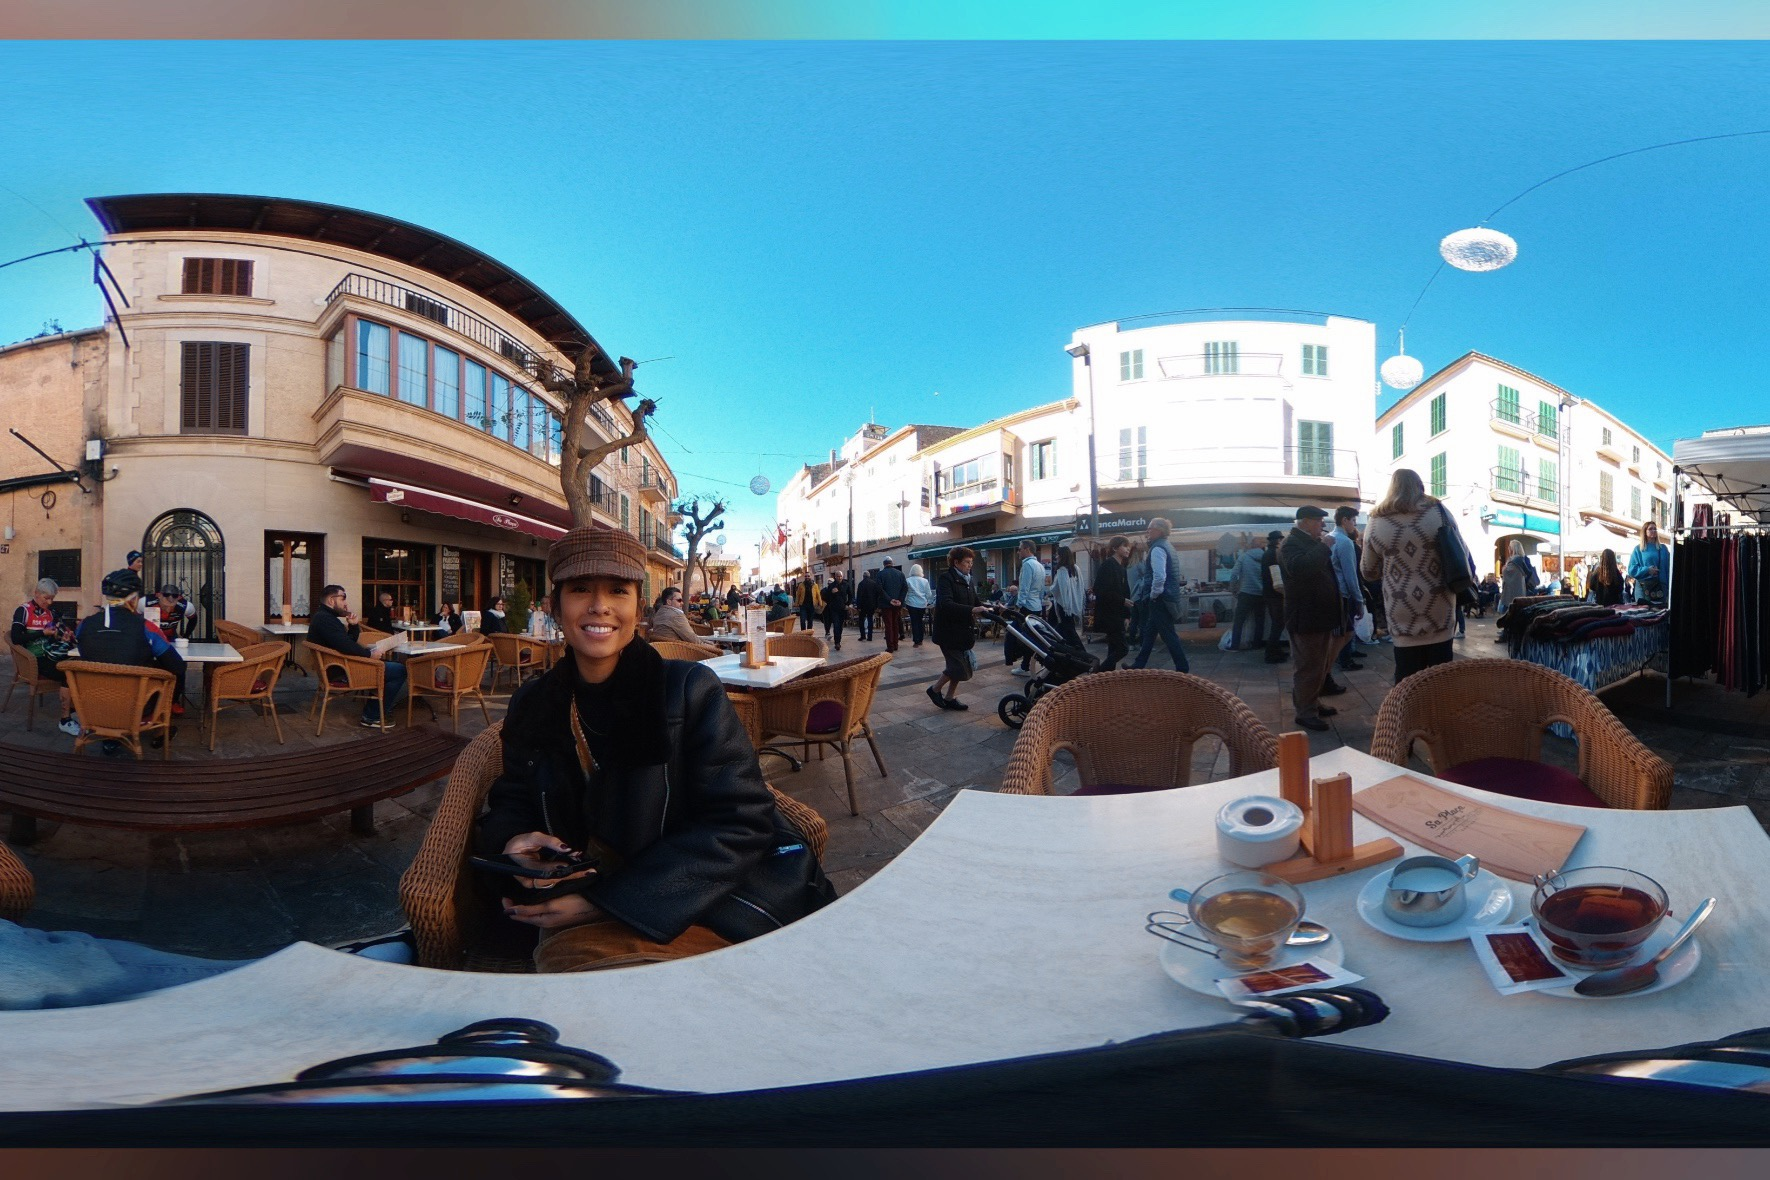 Partial 360 view of where we sat down to have some tea in the middle of the market.